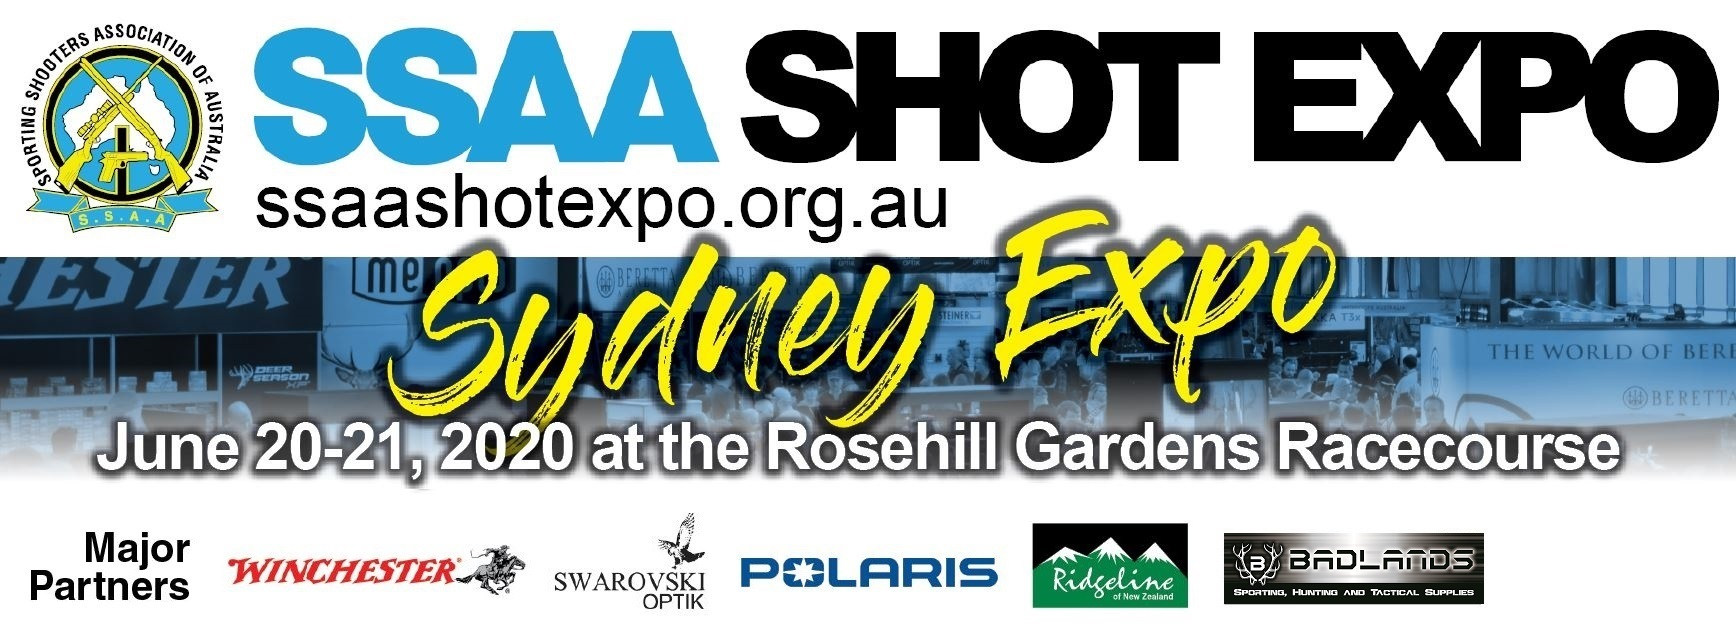 Tickets for CANCELLED: SSAA SHOT Expo Sydney 2020 in Rosehill from Ticketbooth